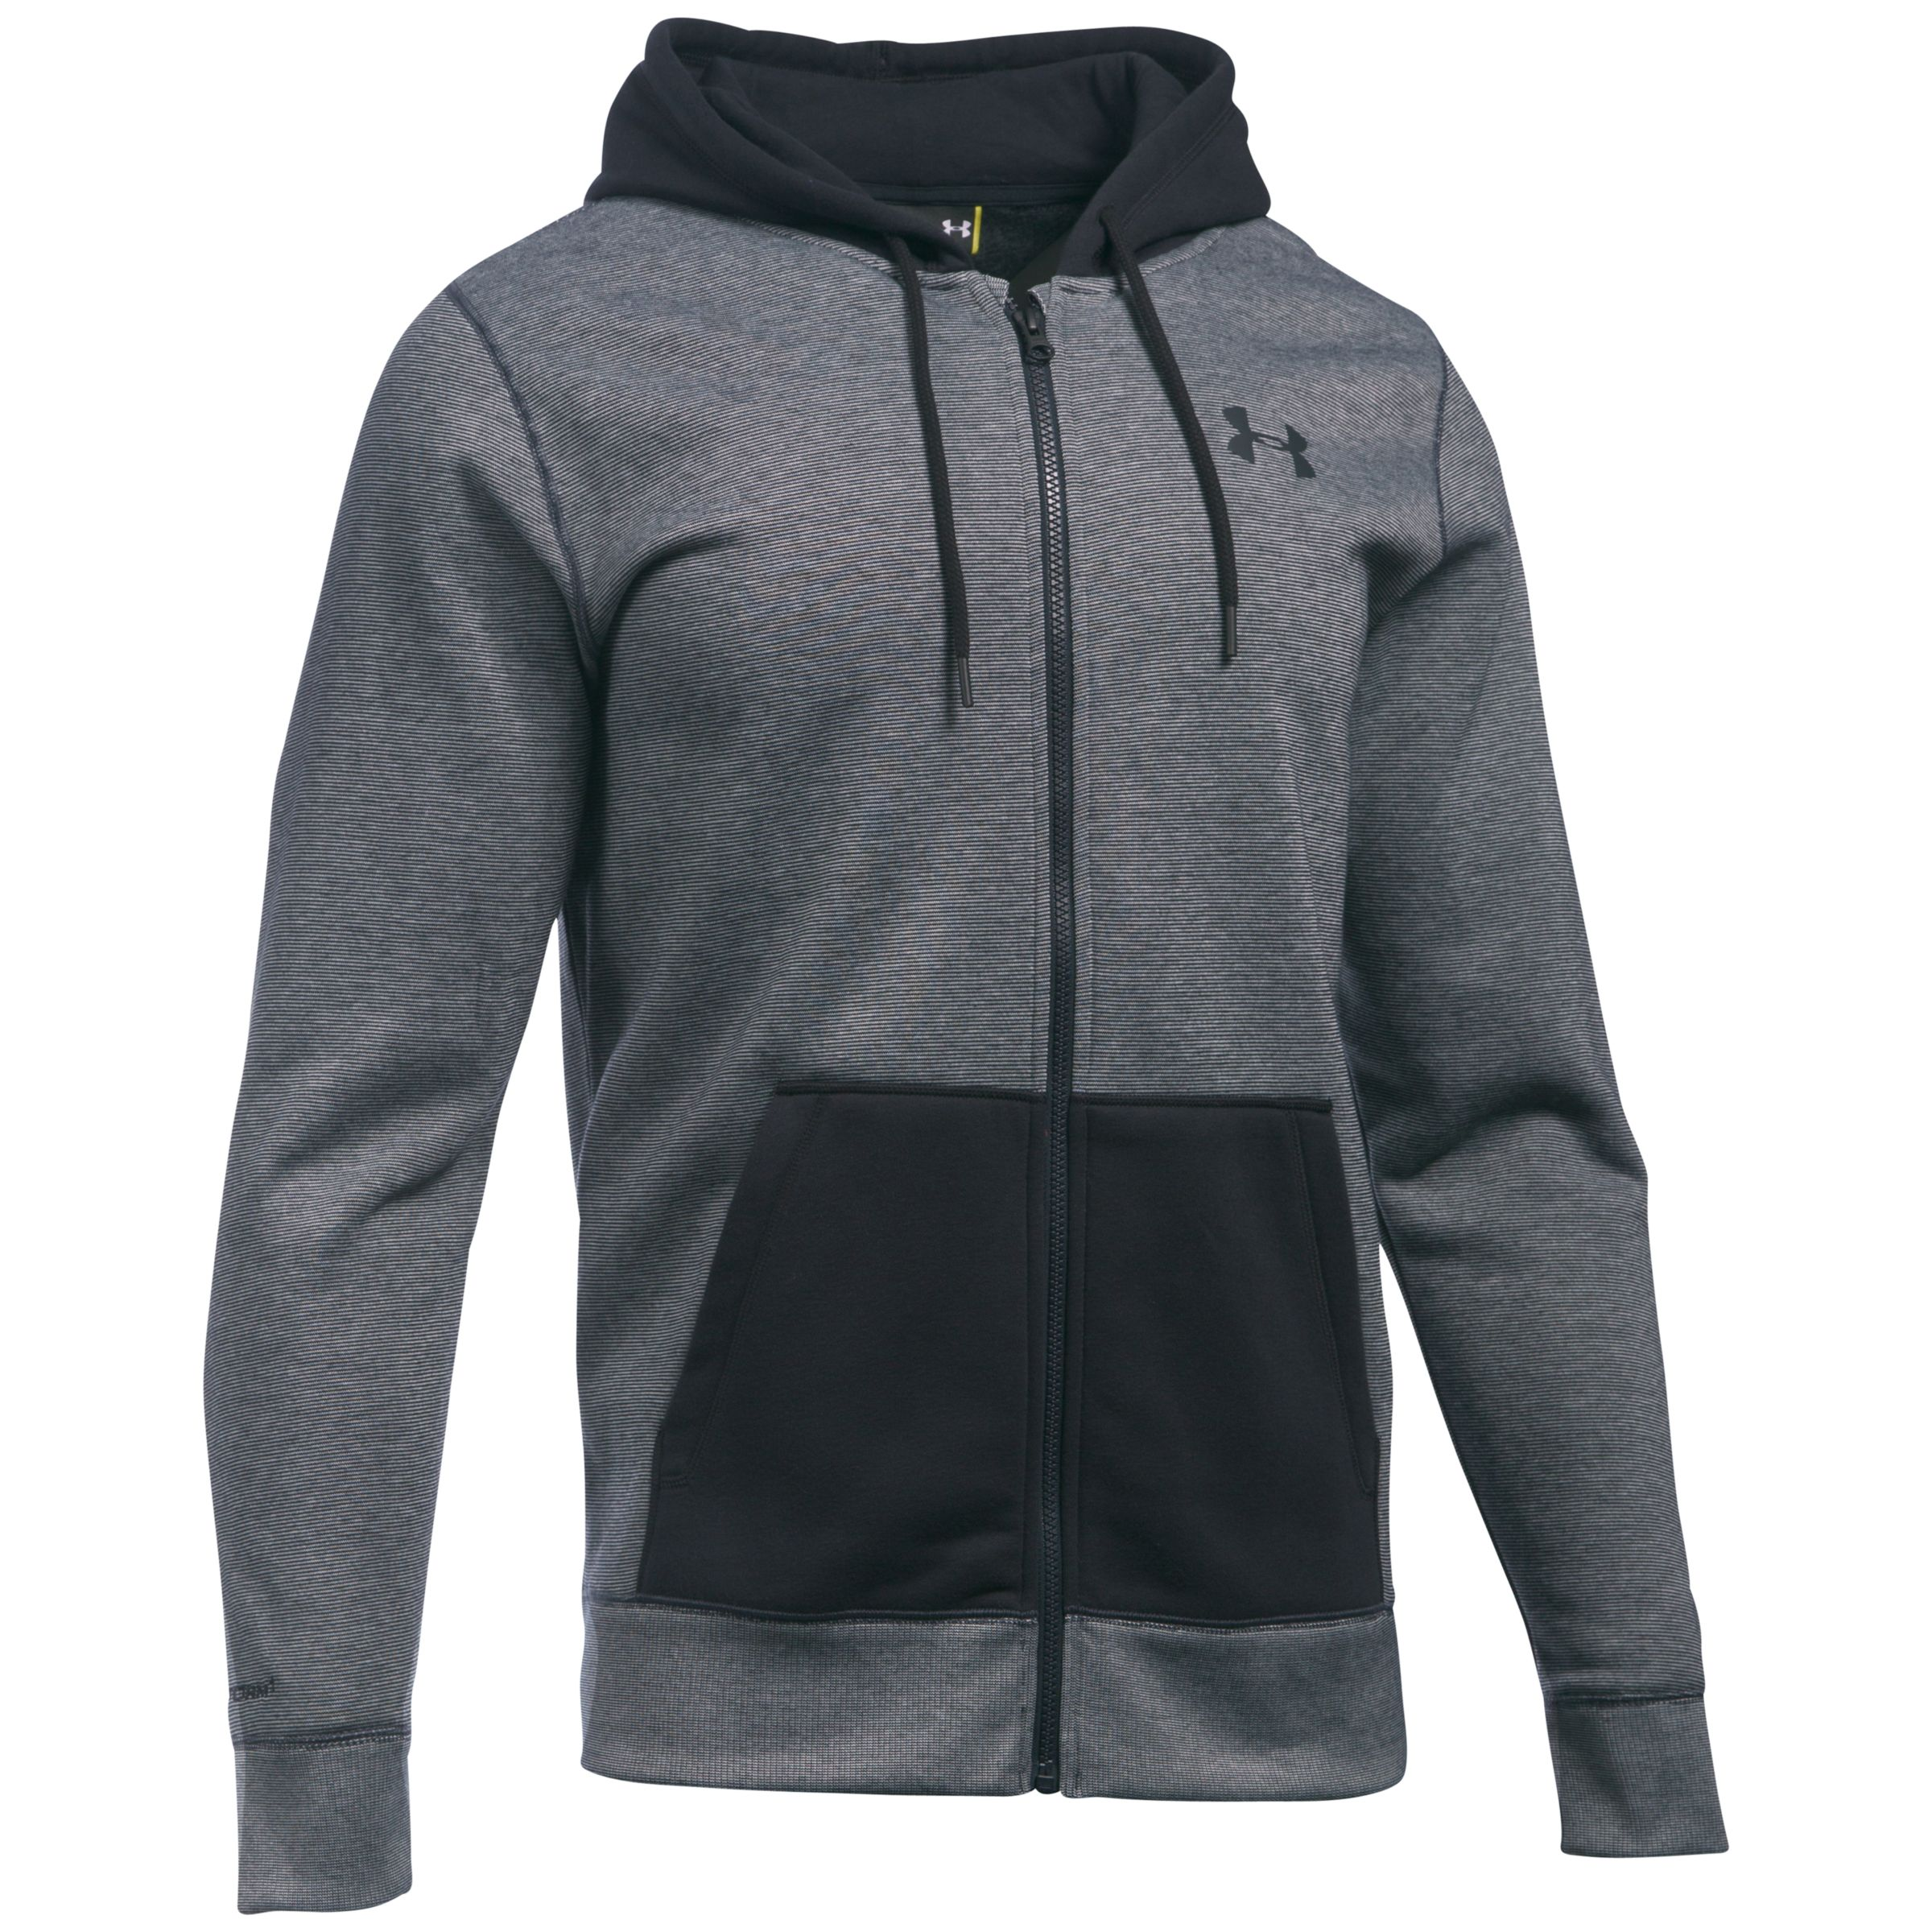 e4342e7f9 Under Armour Storm Rival Fleece Patterned Full Zip Hoodie, Black at John  Lewis & Partners